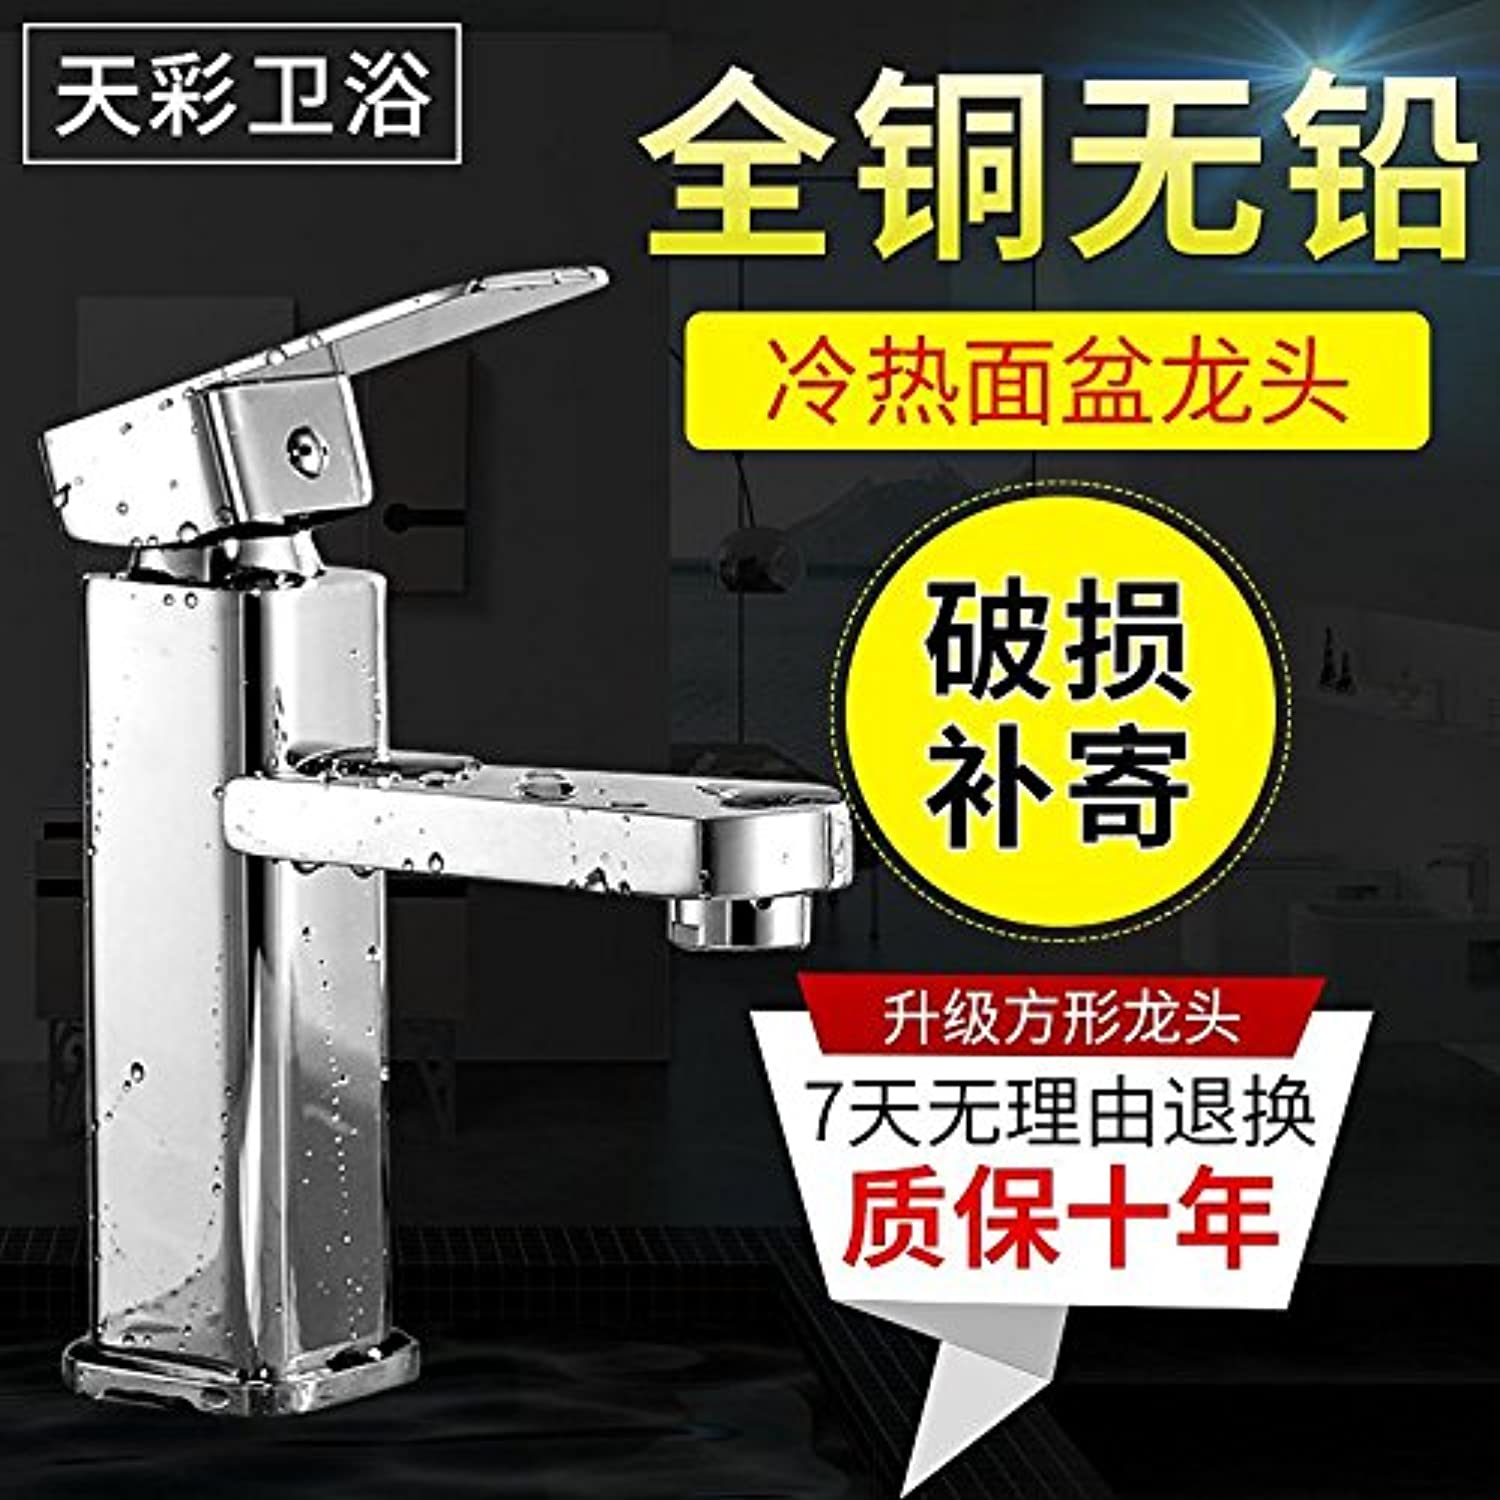 ETERNAL QUALITY Bathroom Sink Basin Tap Brass Mixer Tap Washroom Mixer Faucet Single hole double temperature faucet full copper plating Washbasin Faucet redation alloy fa